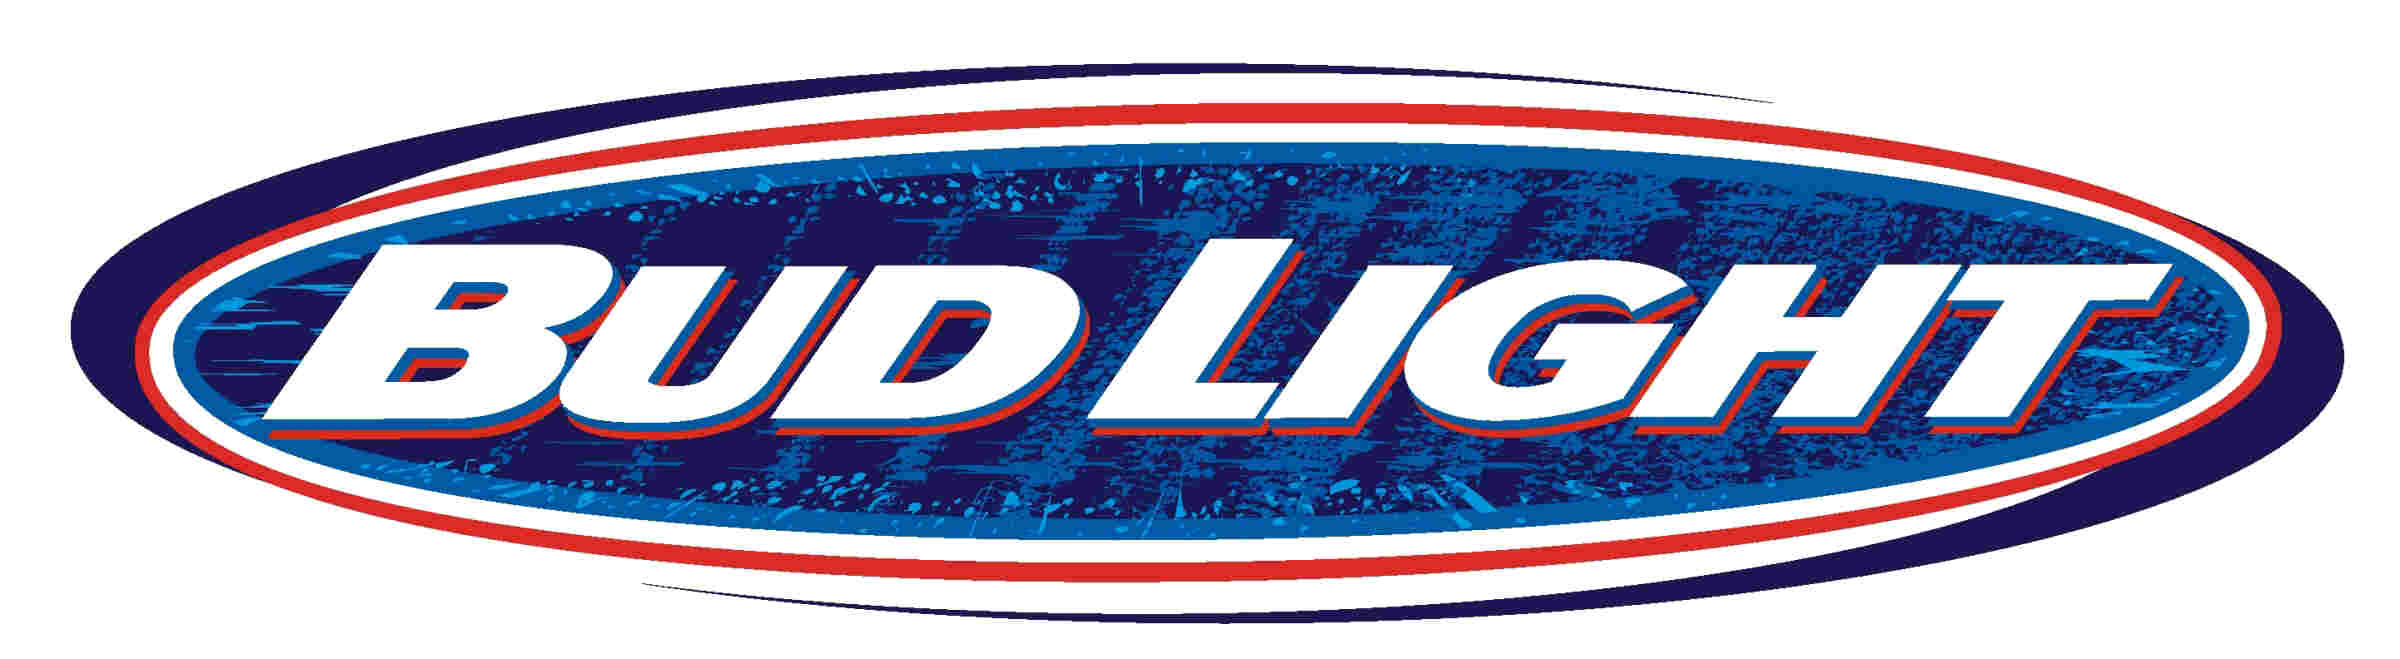 Radio Bud Light Beer Salutes Real Men Of Genius